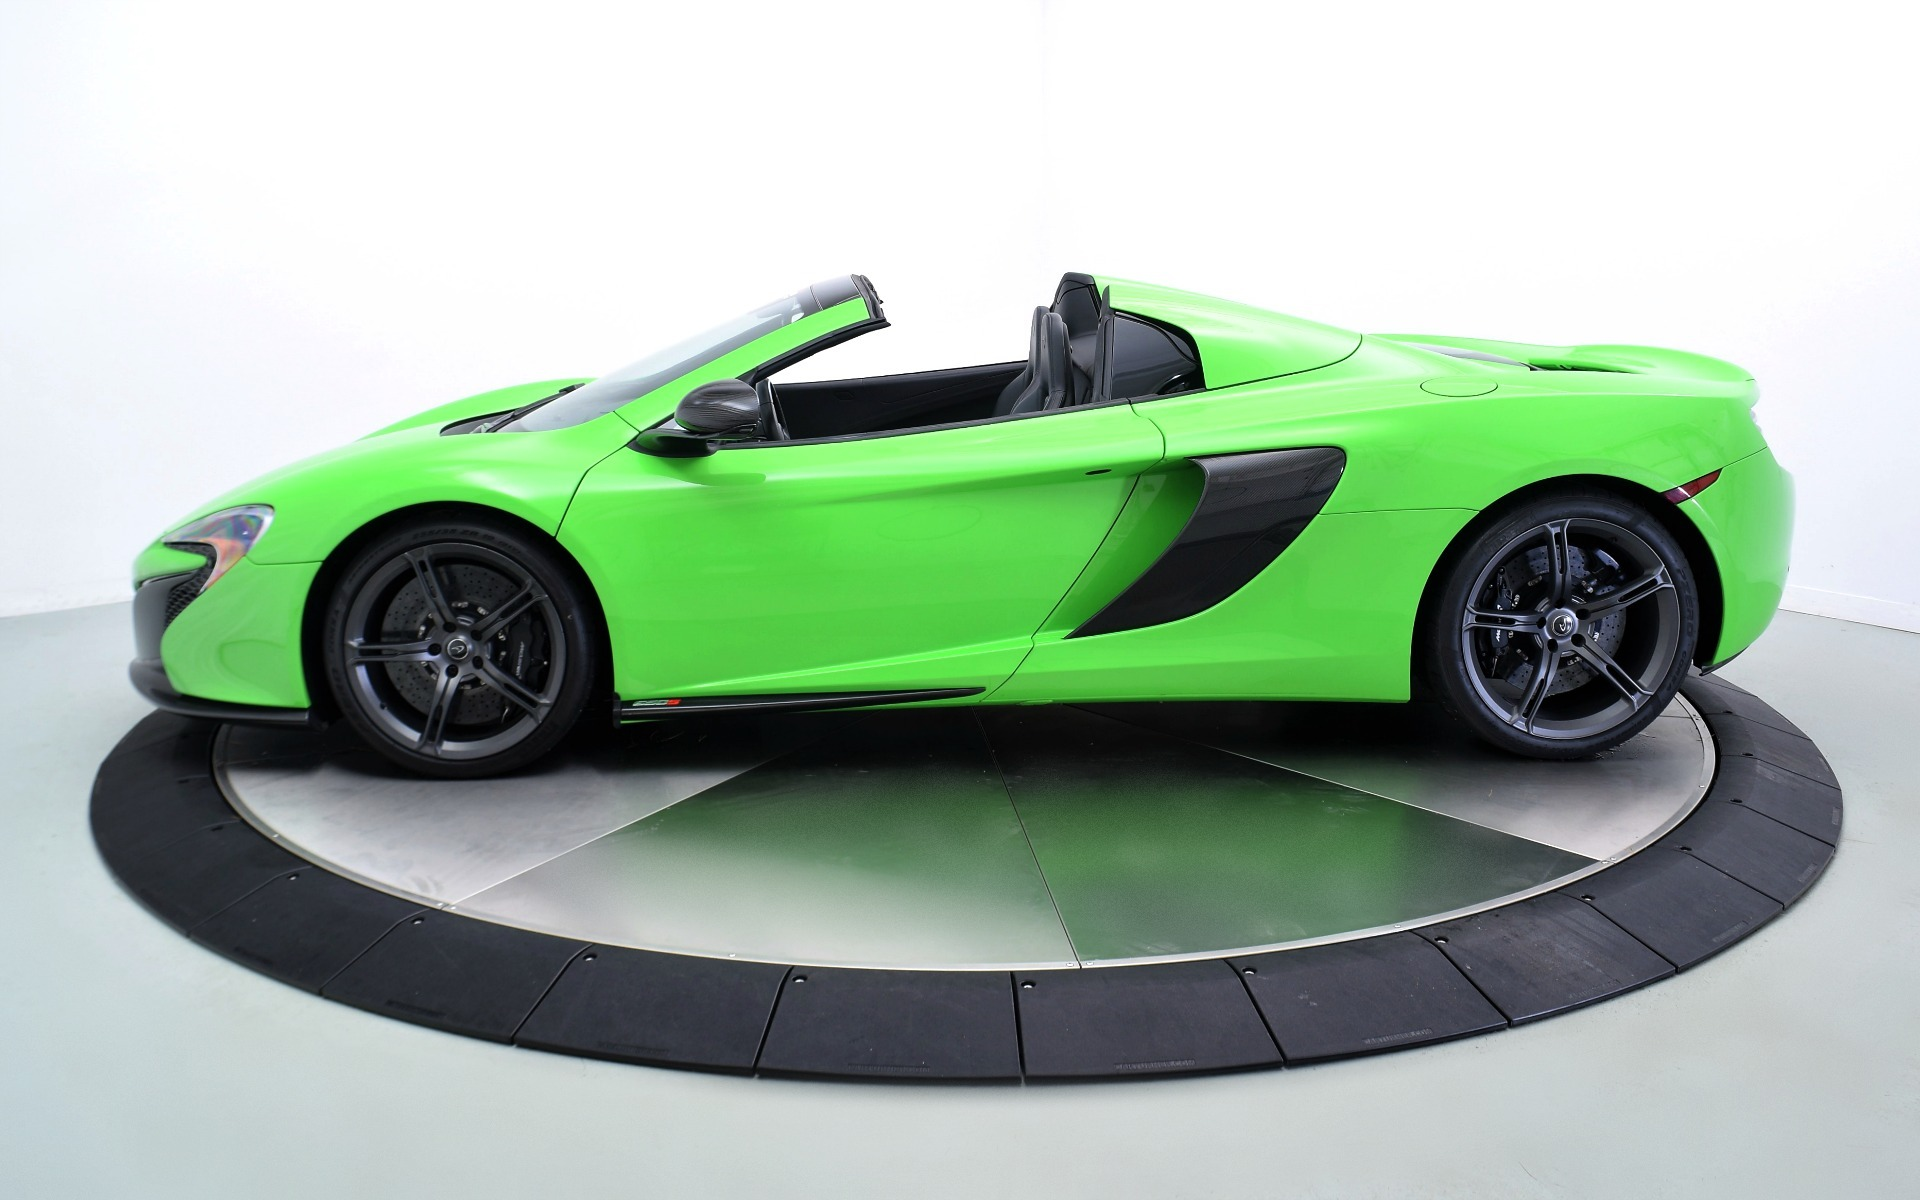 2016 mclaren 650s spider for sale in norwell ma 005595 mclaren boston. Black Bedroom Furniture Sets. Home Design Ideas